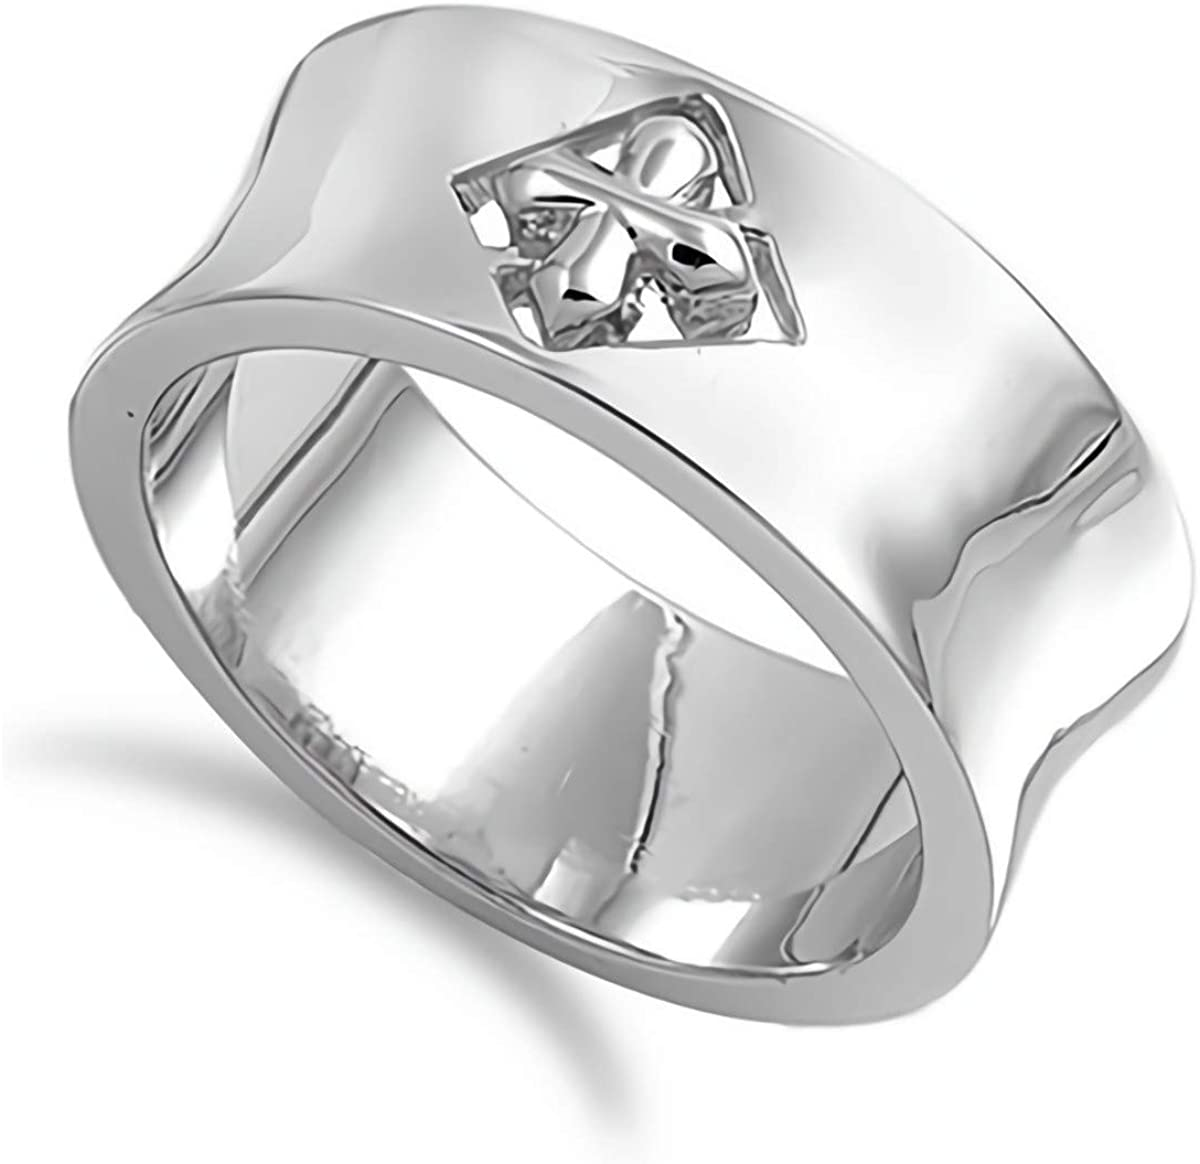 Glitzs Jewels 925 Sterling Silver Ring (Cross)   Cute Jewelry Gift for Women in Gift Box